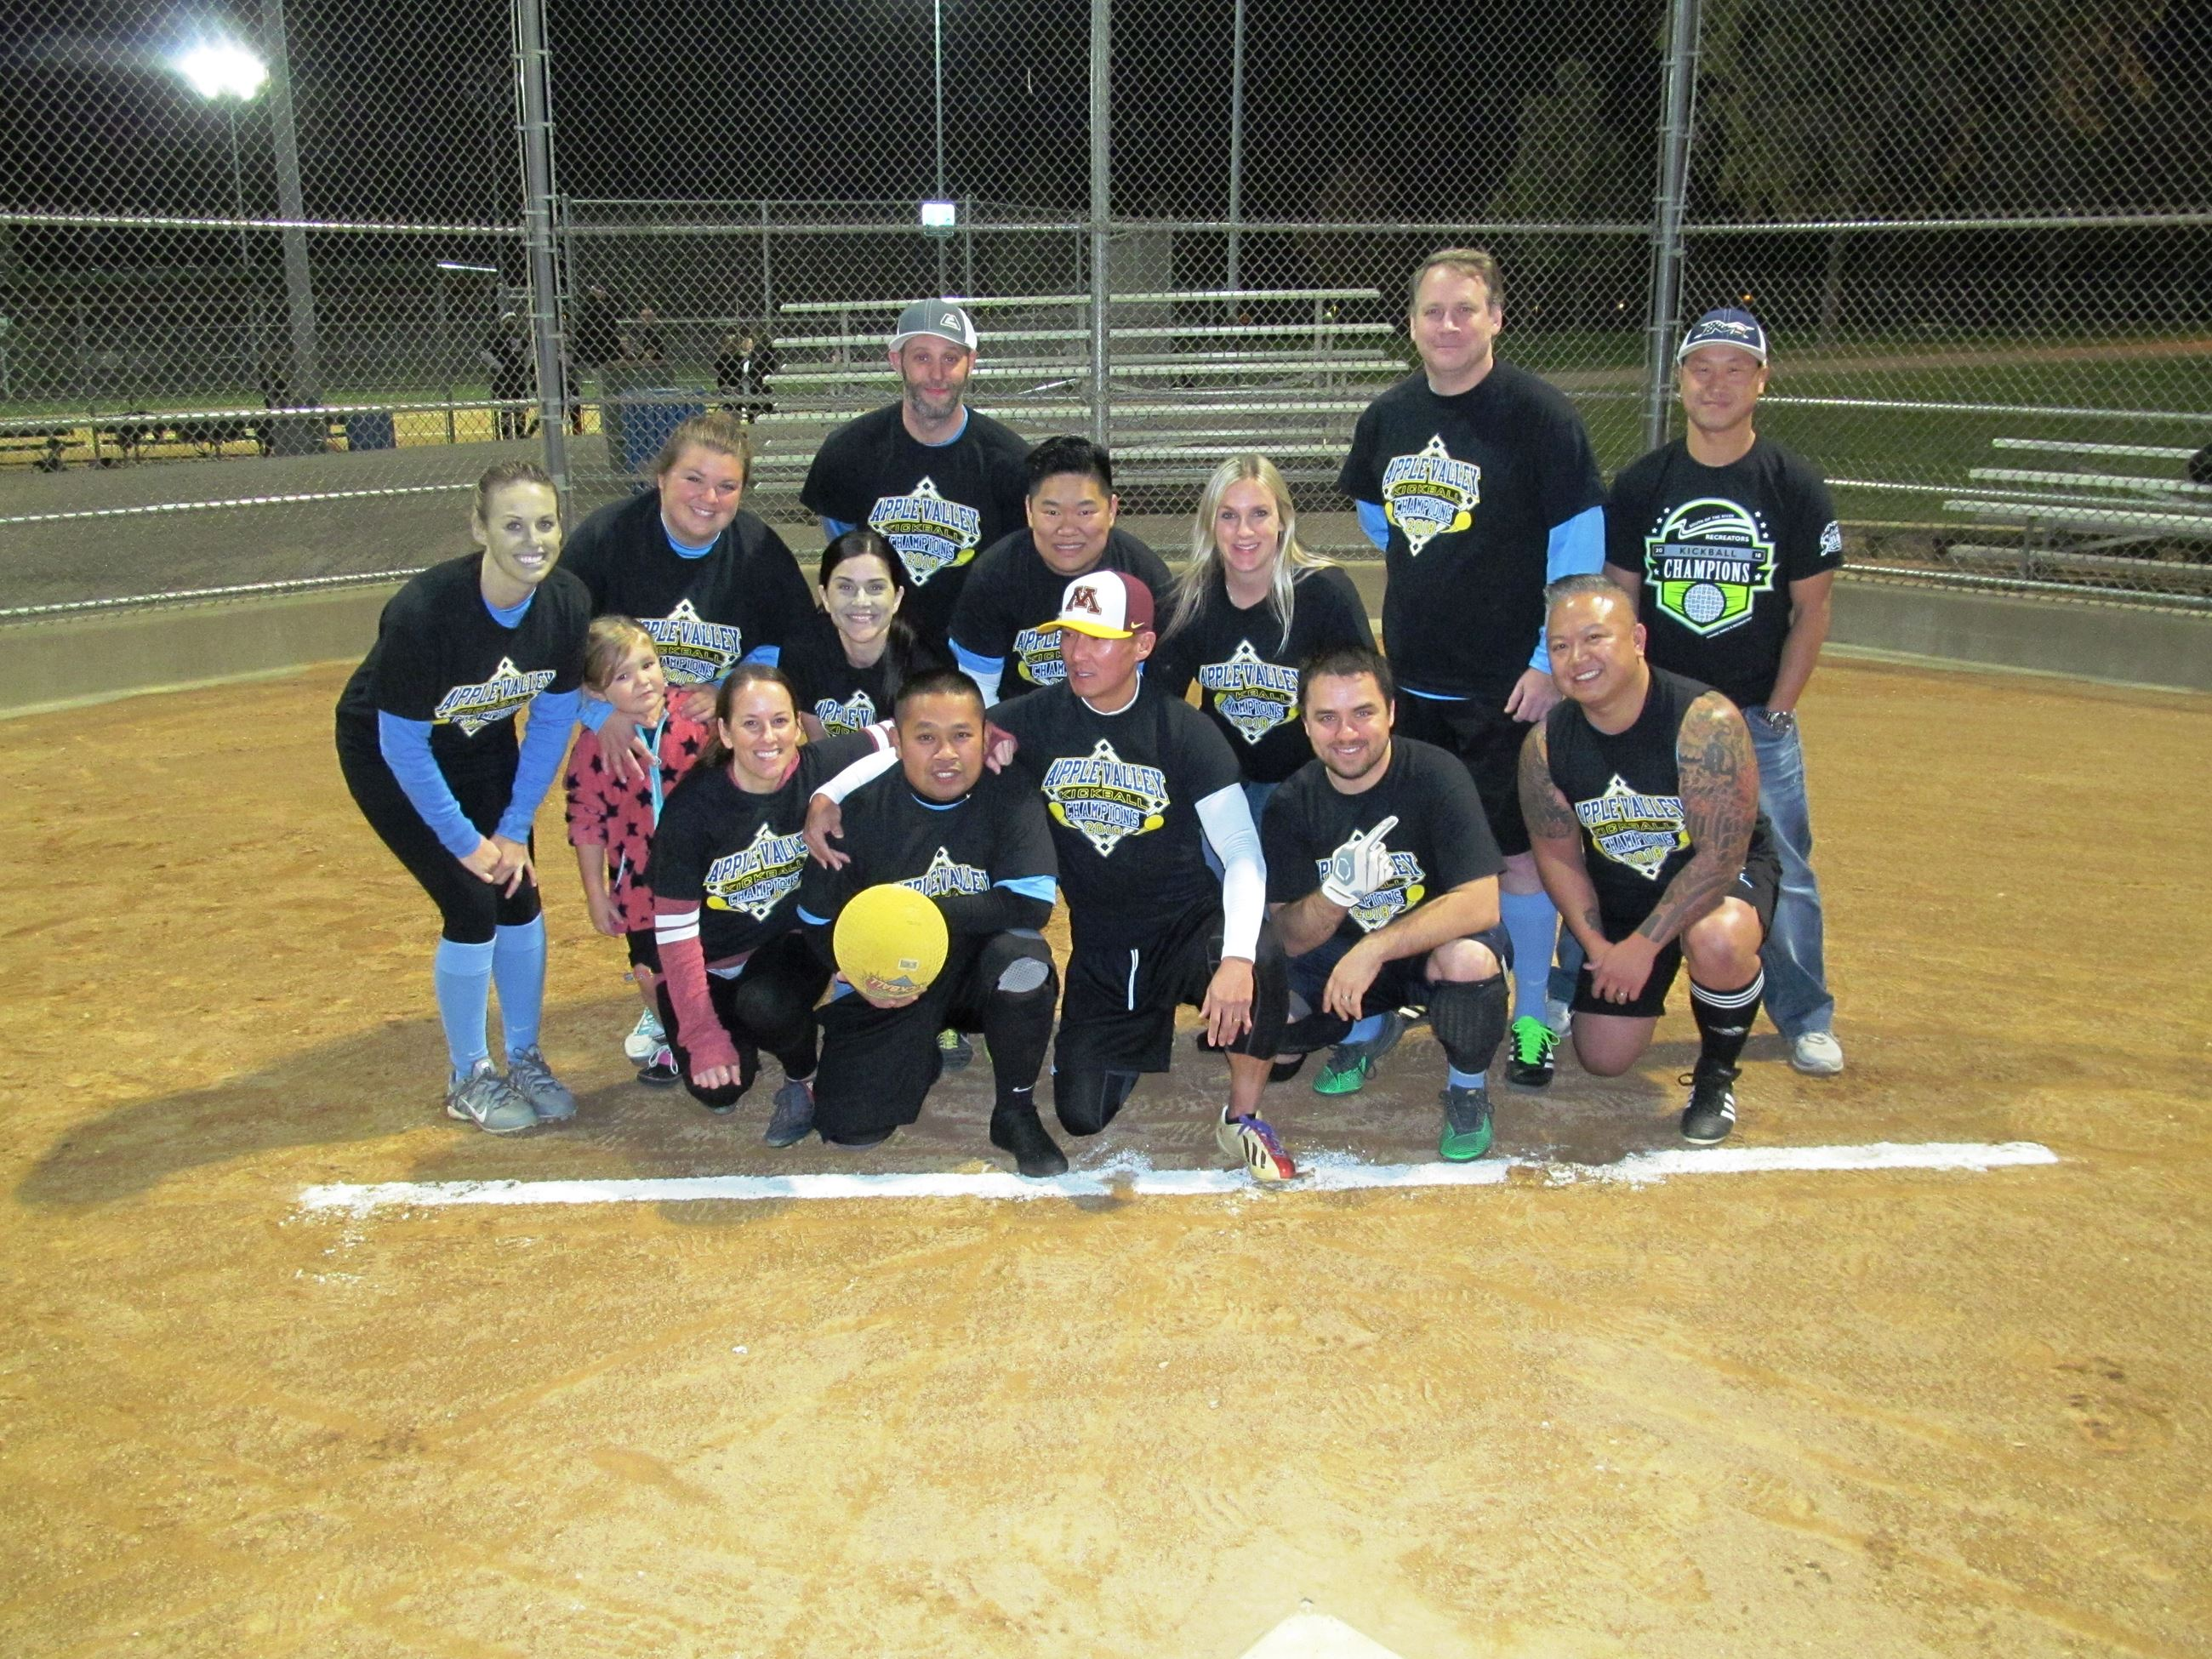 2018_Fall_Kickball_League_Champions_1st_Grade_All_Stars_8-0